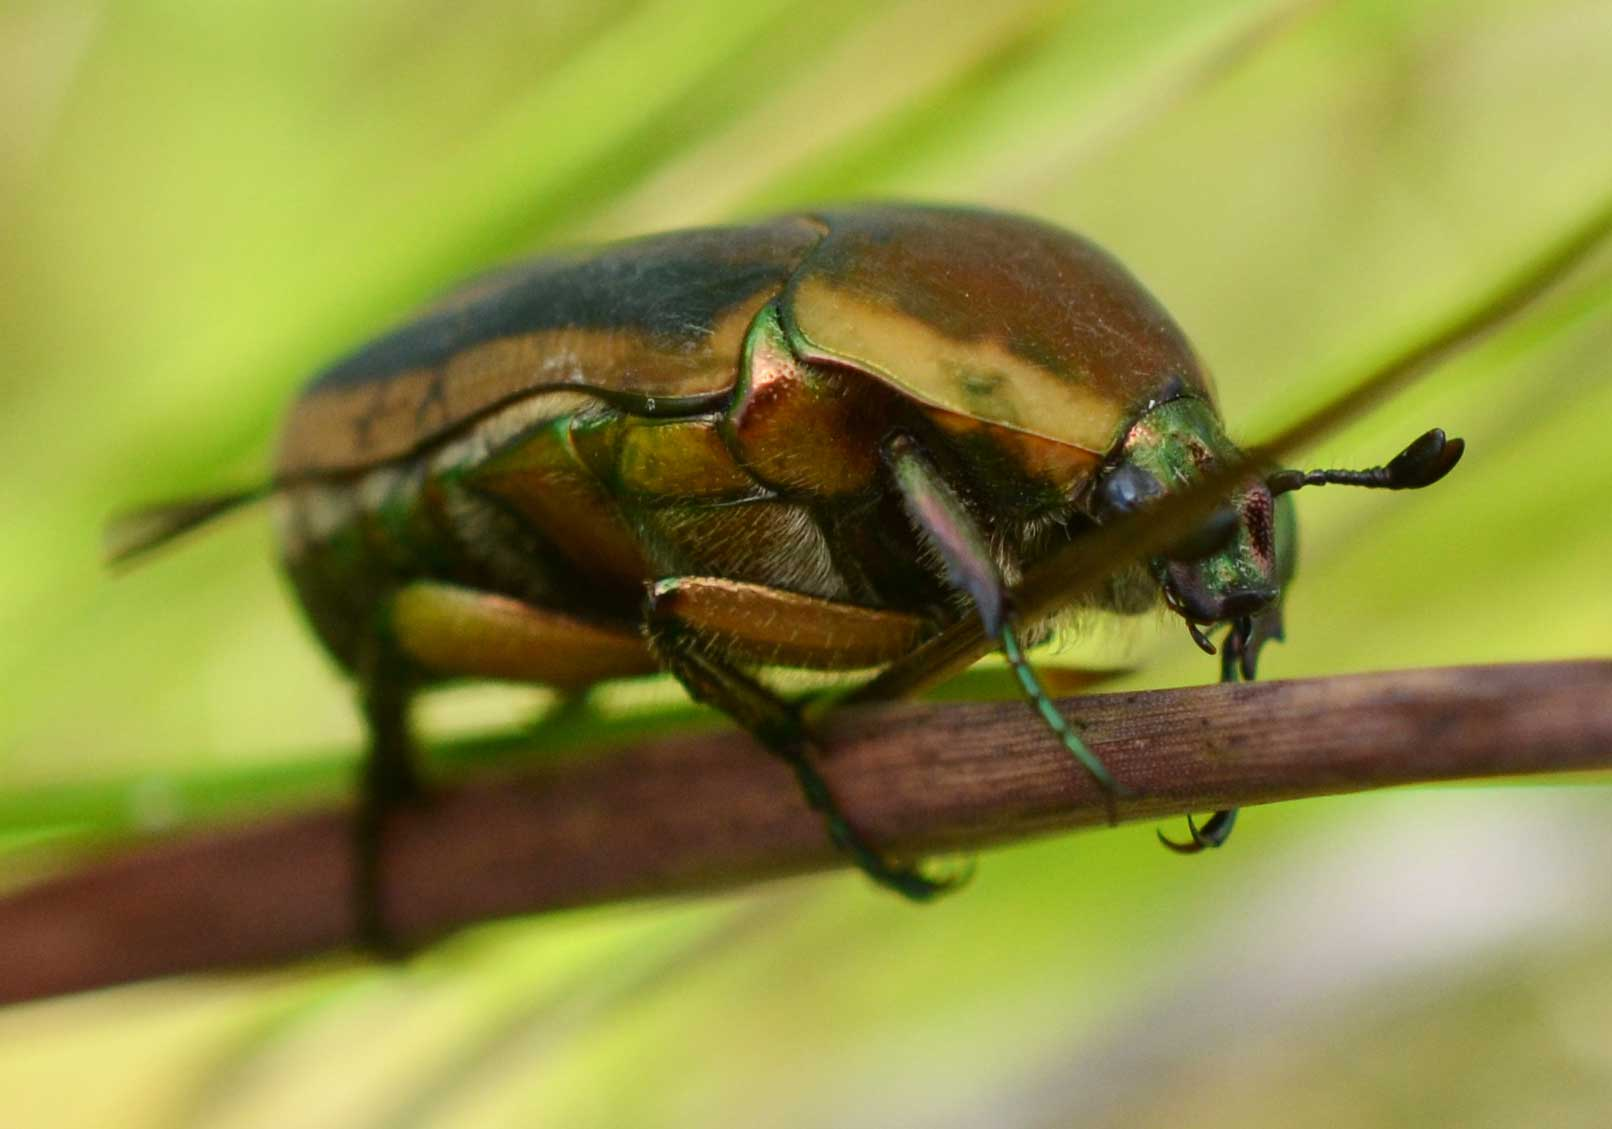 Learn about Nature | June Beetle - Learn about Nature - photo#6